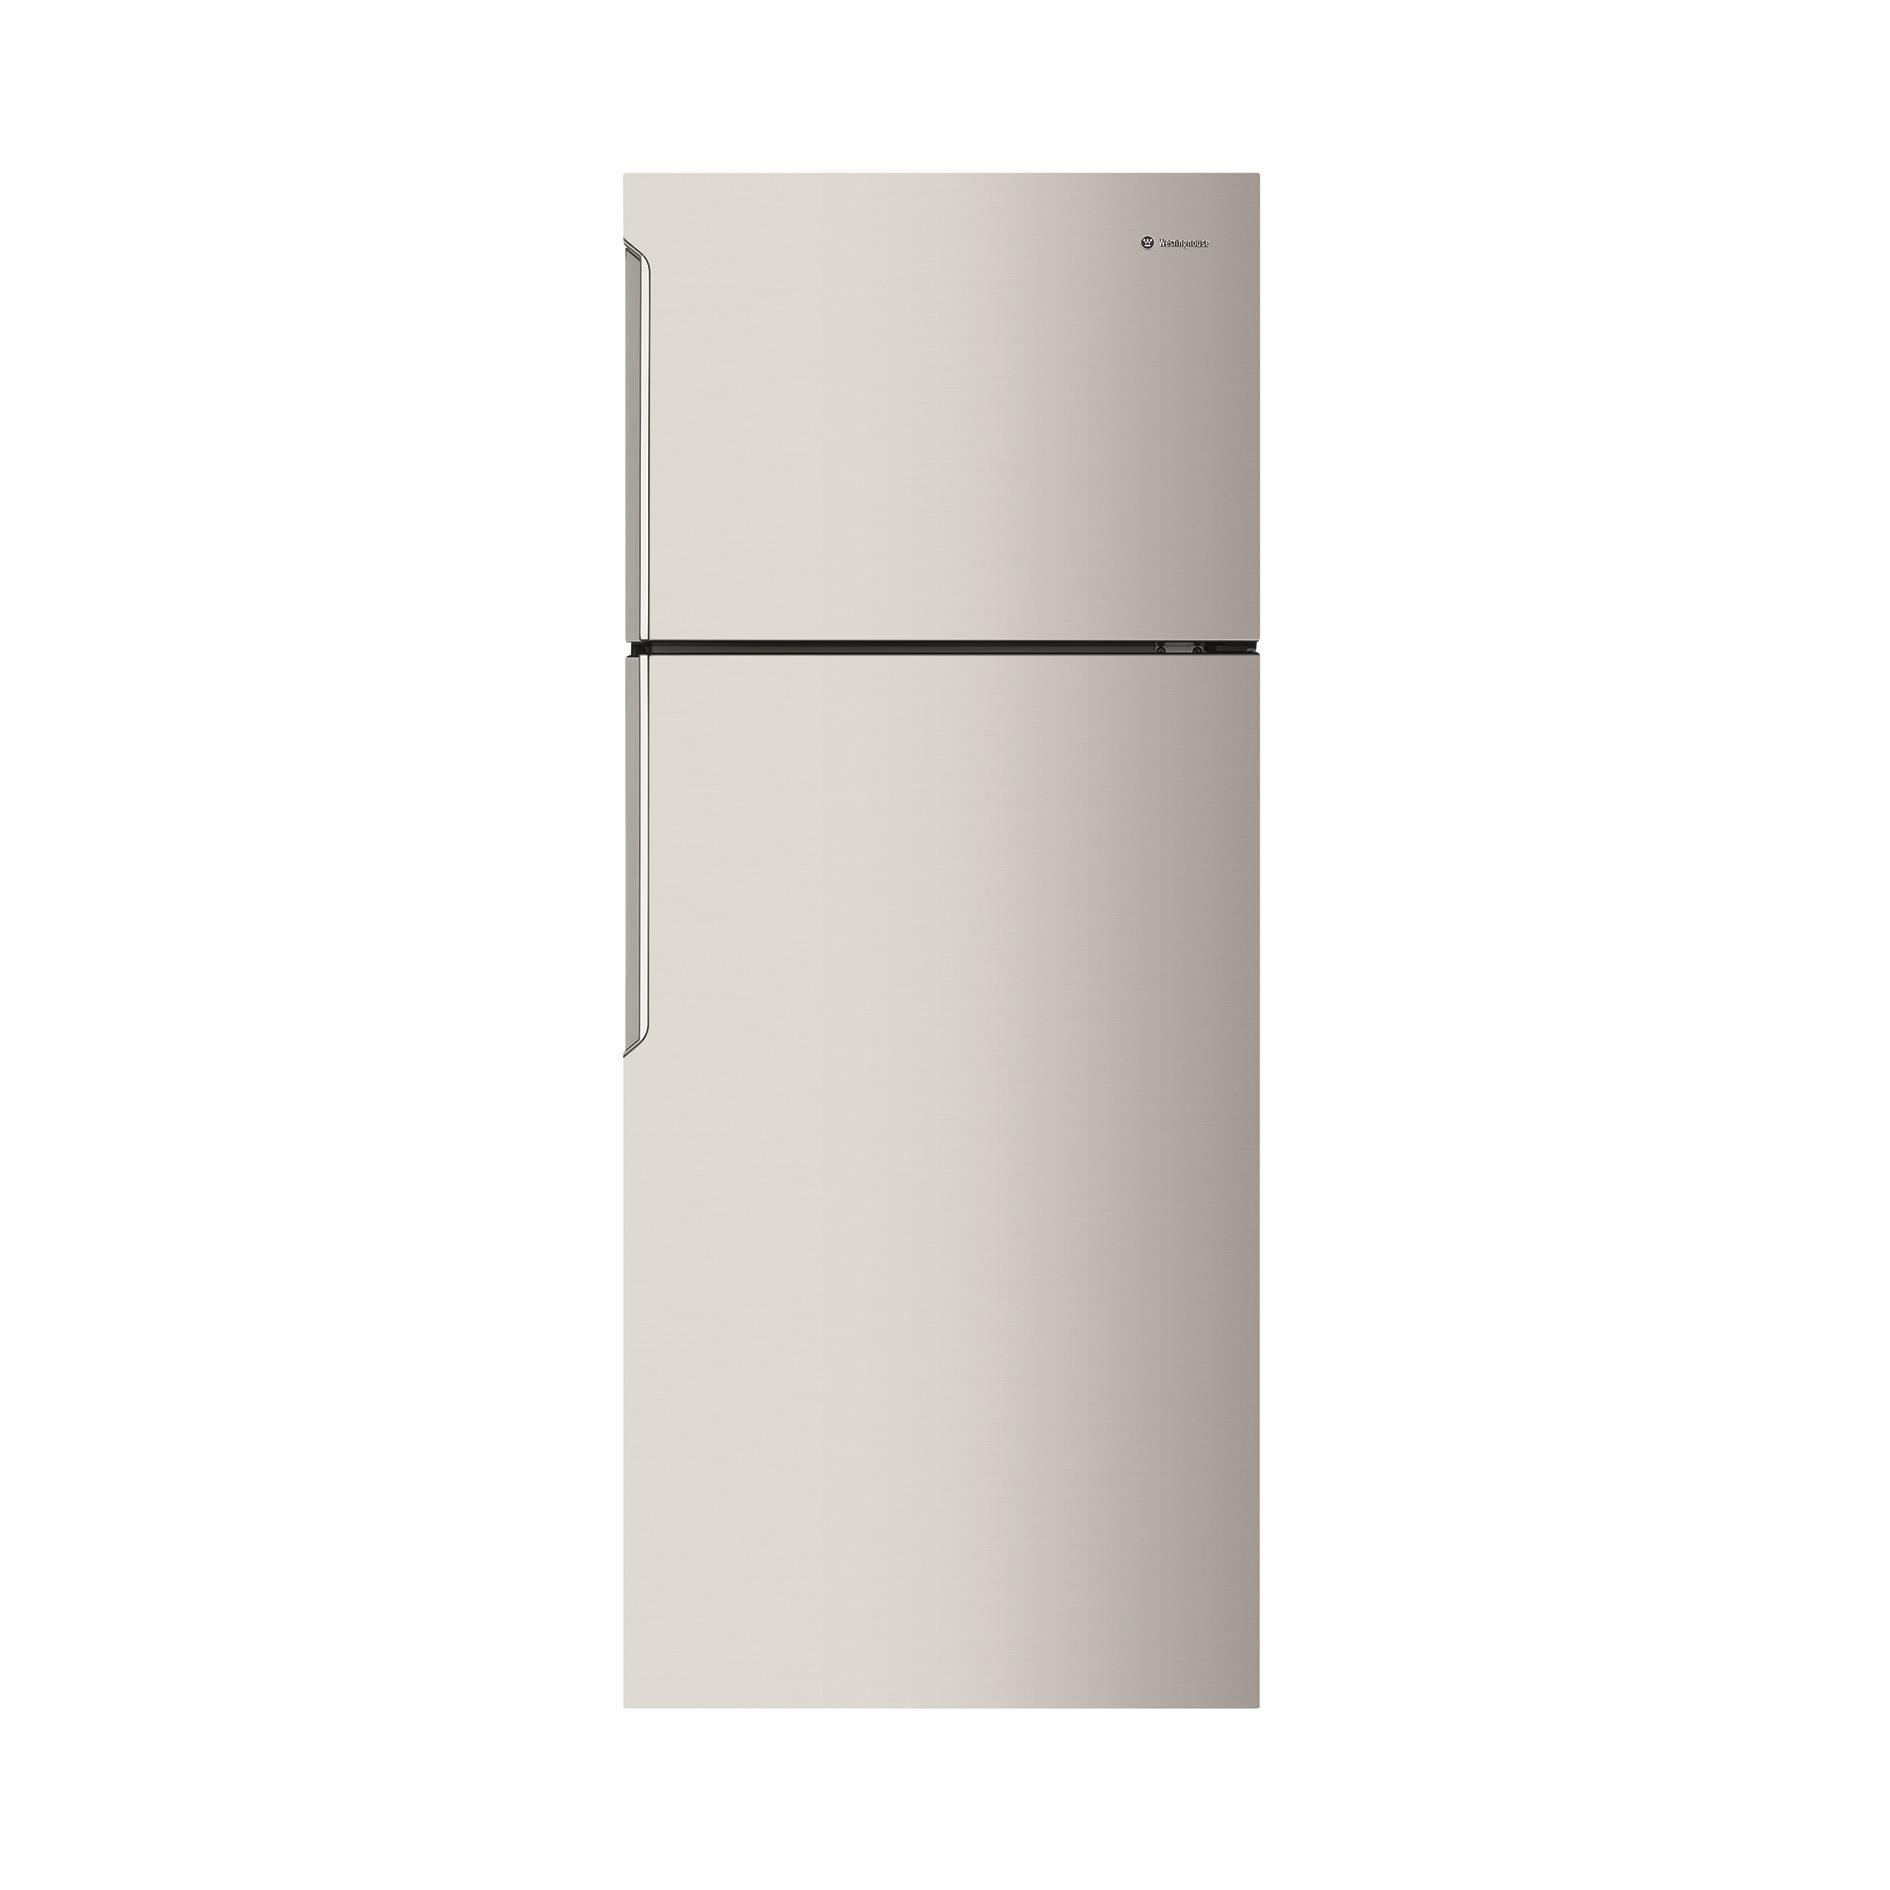 Westinghouse WTB4600SB 460L Top Mount Fridge (S/Steel) [Right]